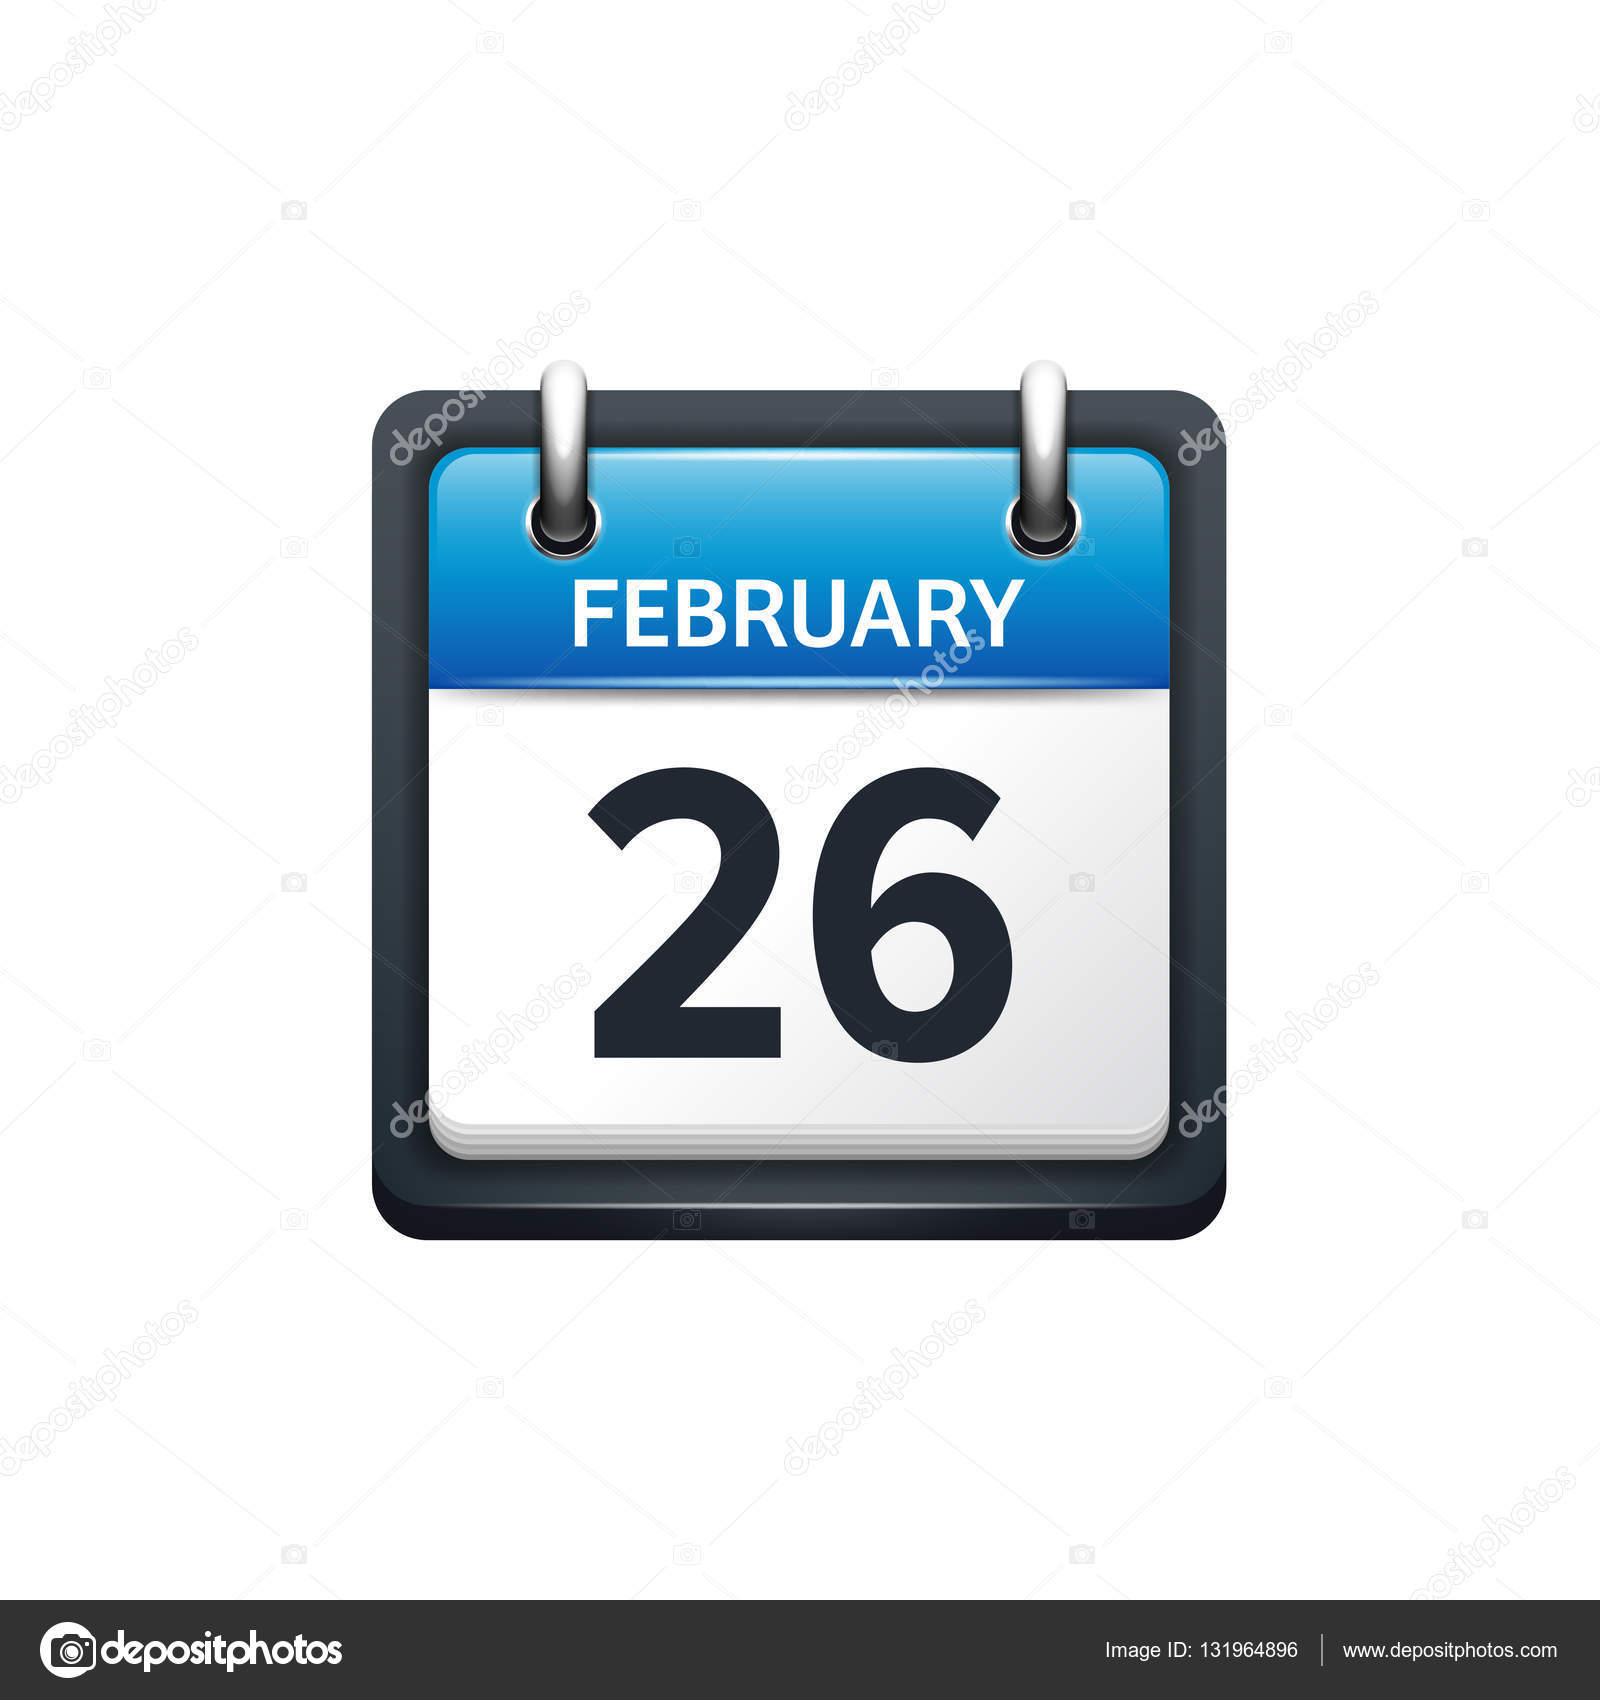 February 26. Calendar Icon.vector Illustration,Flat Style with Glyphicon-Calendar Icon Not Showing